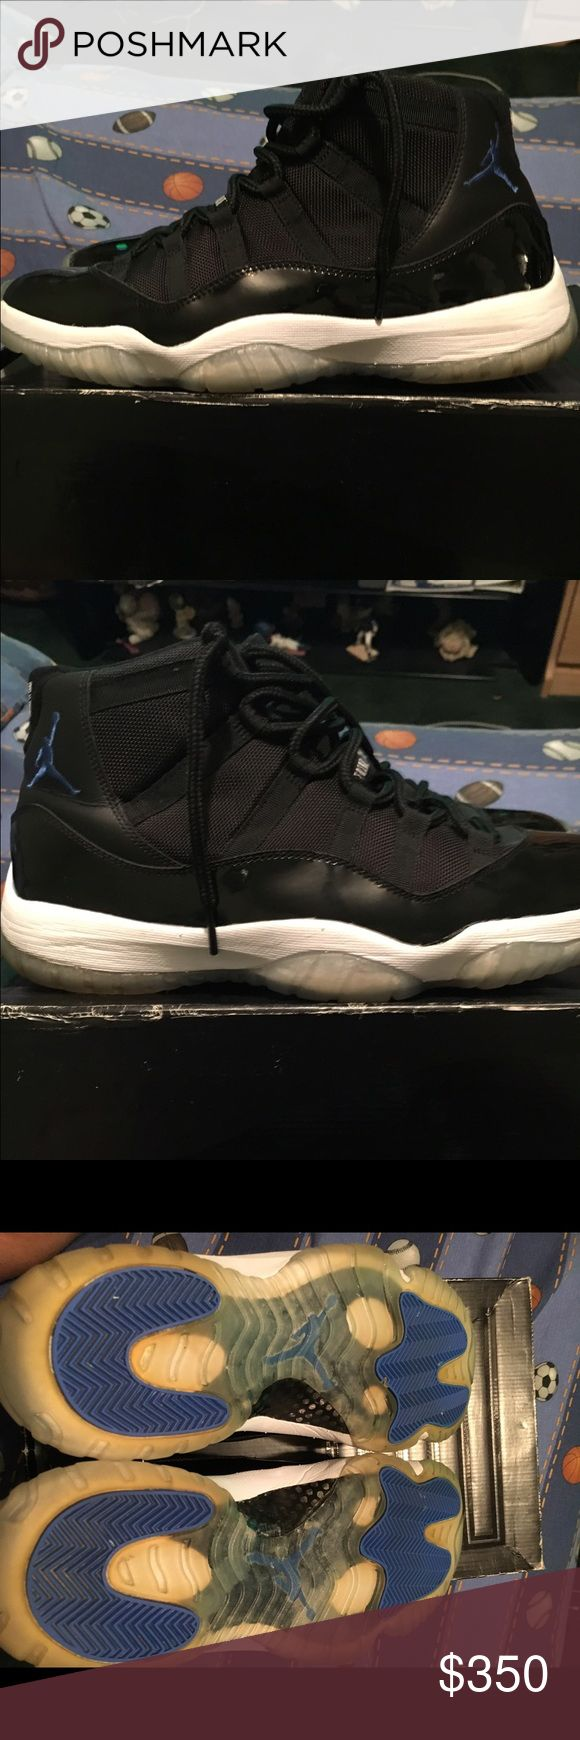 Air Jordan Space Jam 11 2009 100% Authentic  Includes Box and Receipt 8/10 condition  Only problem is yellowing soles 350 OBO Will trade for Ps4 with games Jordan Shoes Sneakers